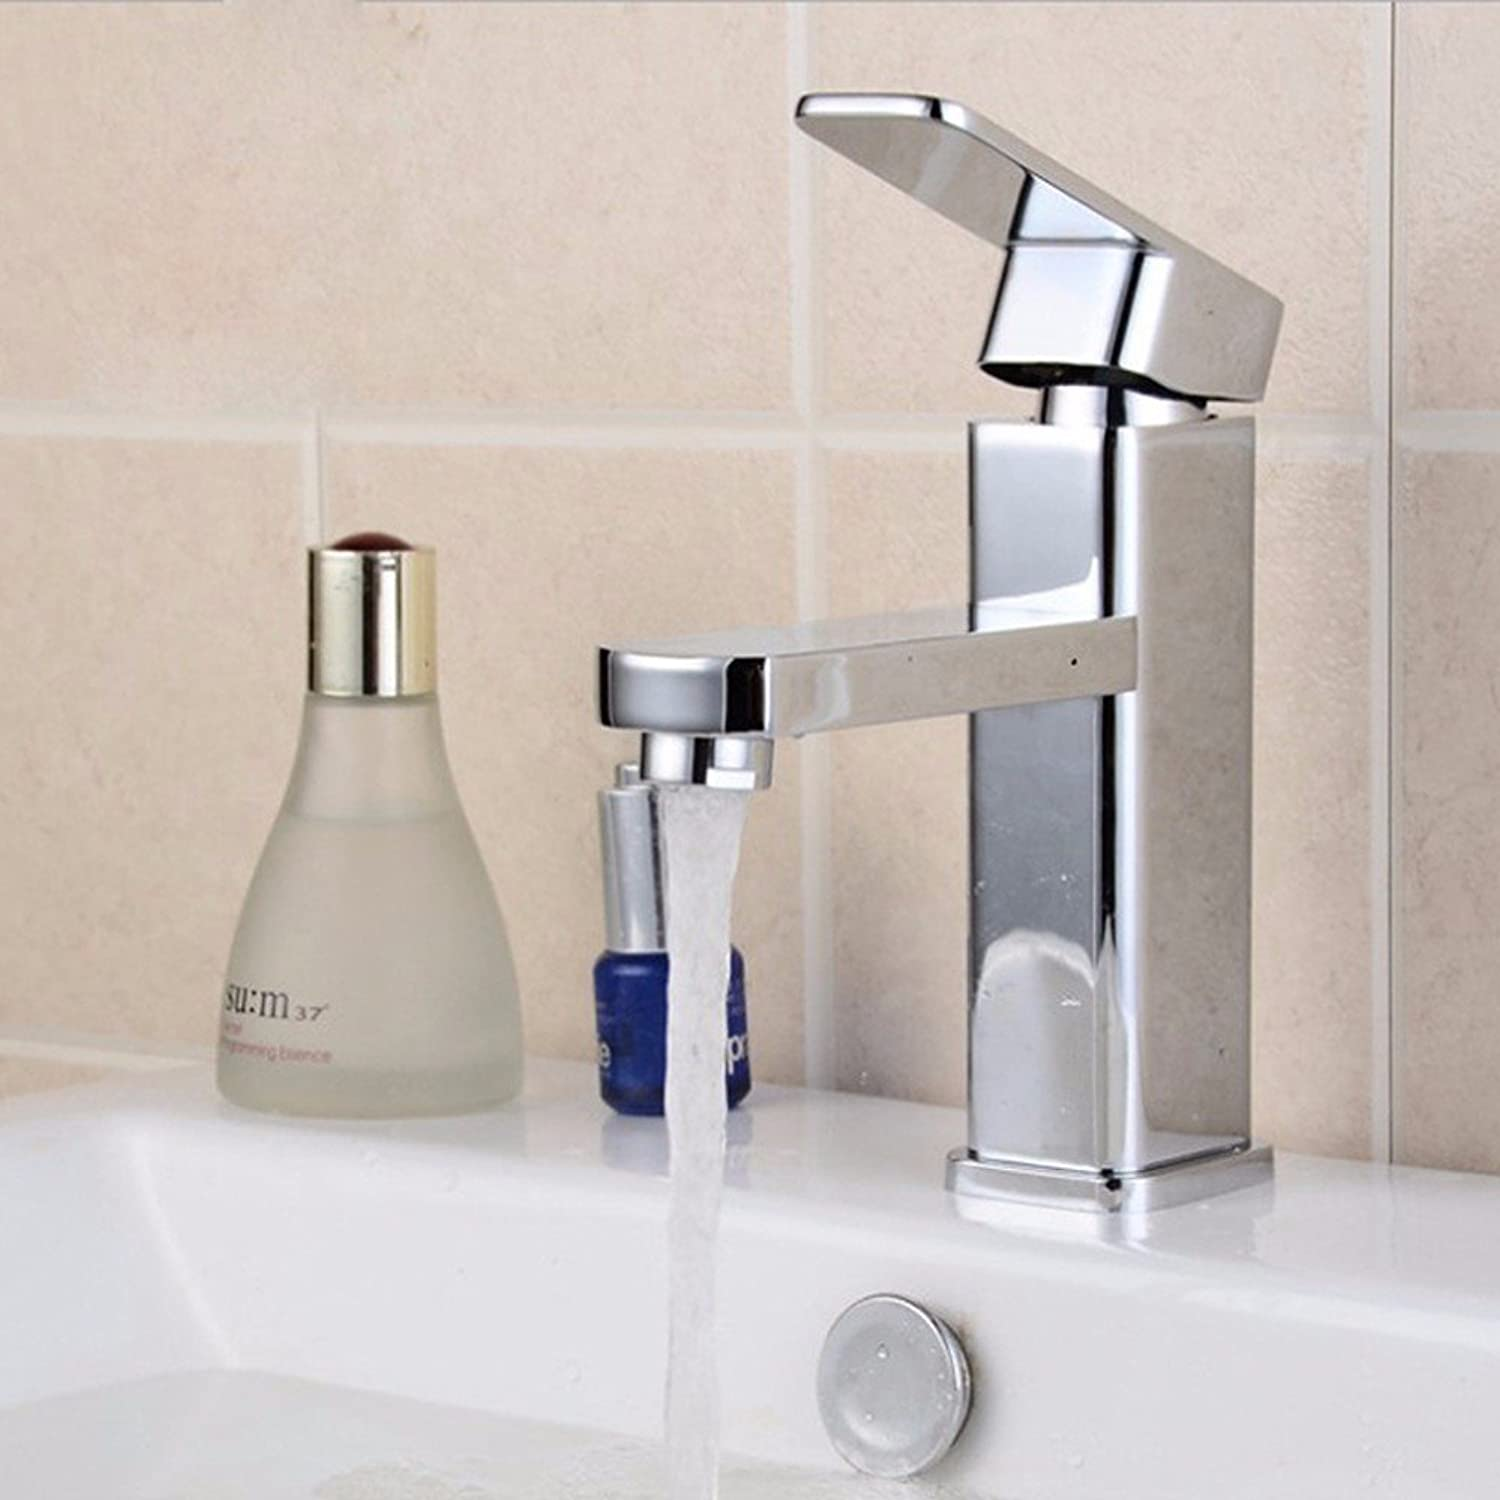 LHbox Basin Mixer Tap Bathroom Sink Faucet Hand wash basin faucet basin mixer lowered basin single hole brass body and cold water faucet